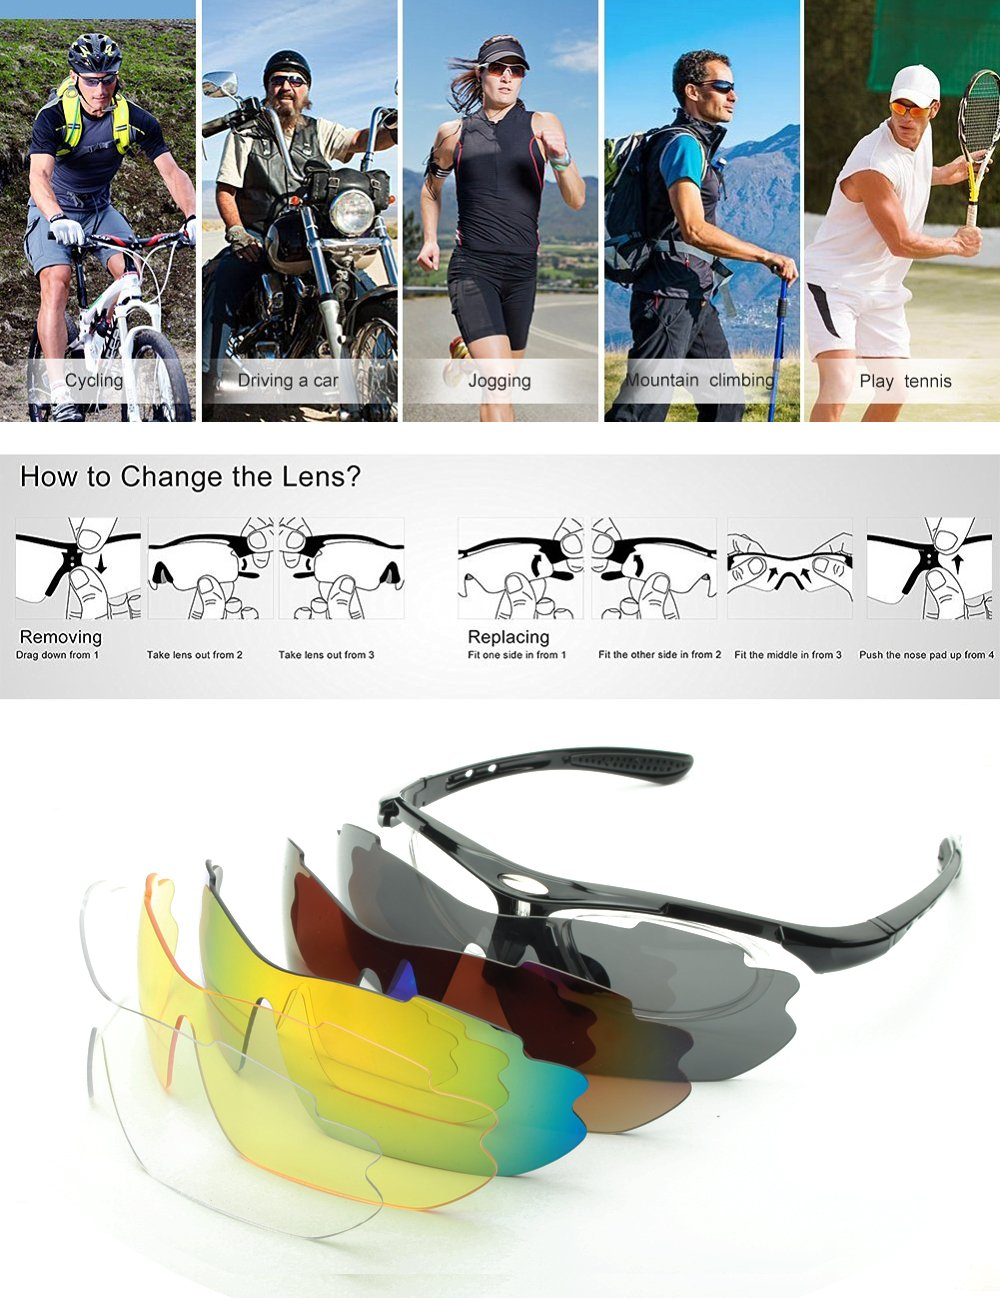 IALUKU Cycling Sunglasses Polarized with 5 Interchangeable Lenses, Sports Sunglasses for Men Women Driving Baseball Fishing Golf (Black, 79)